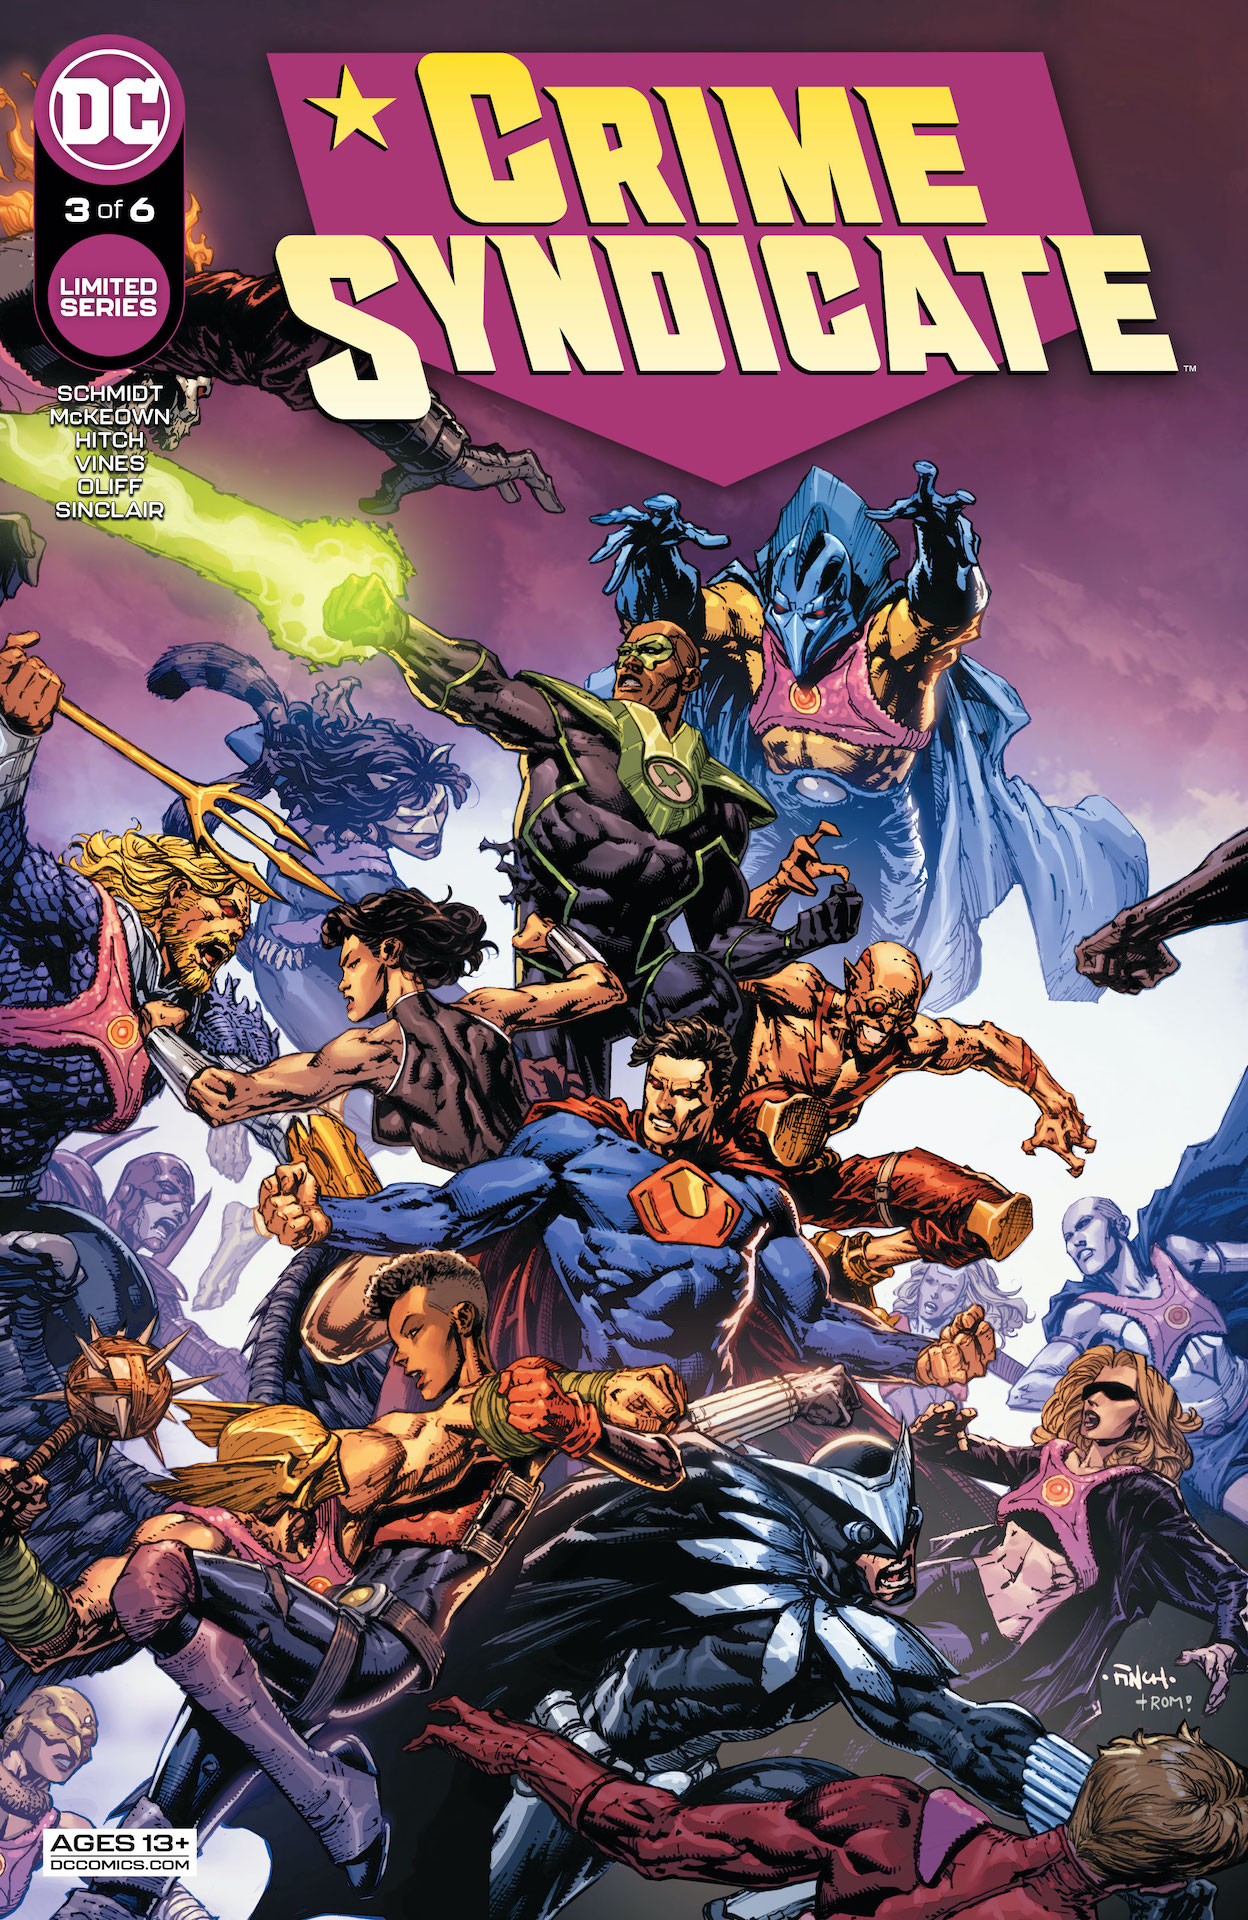 DC Preview: Crime Syndicate #3